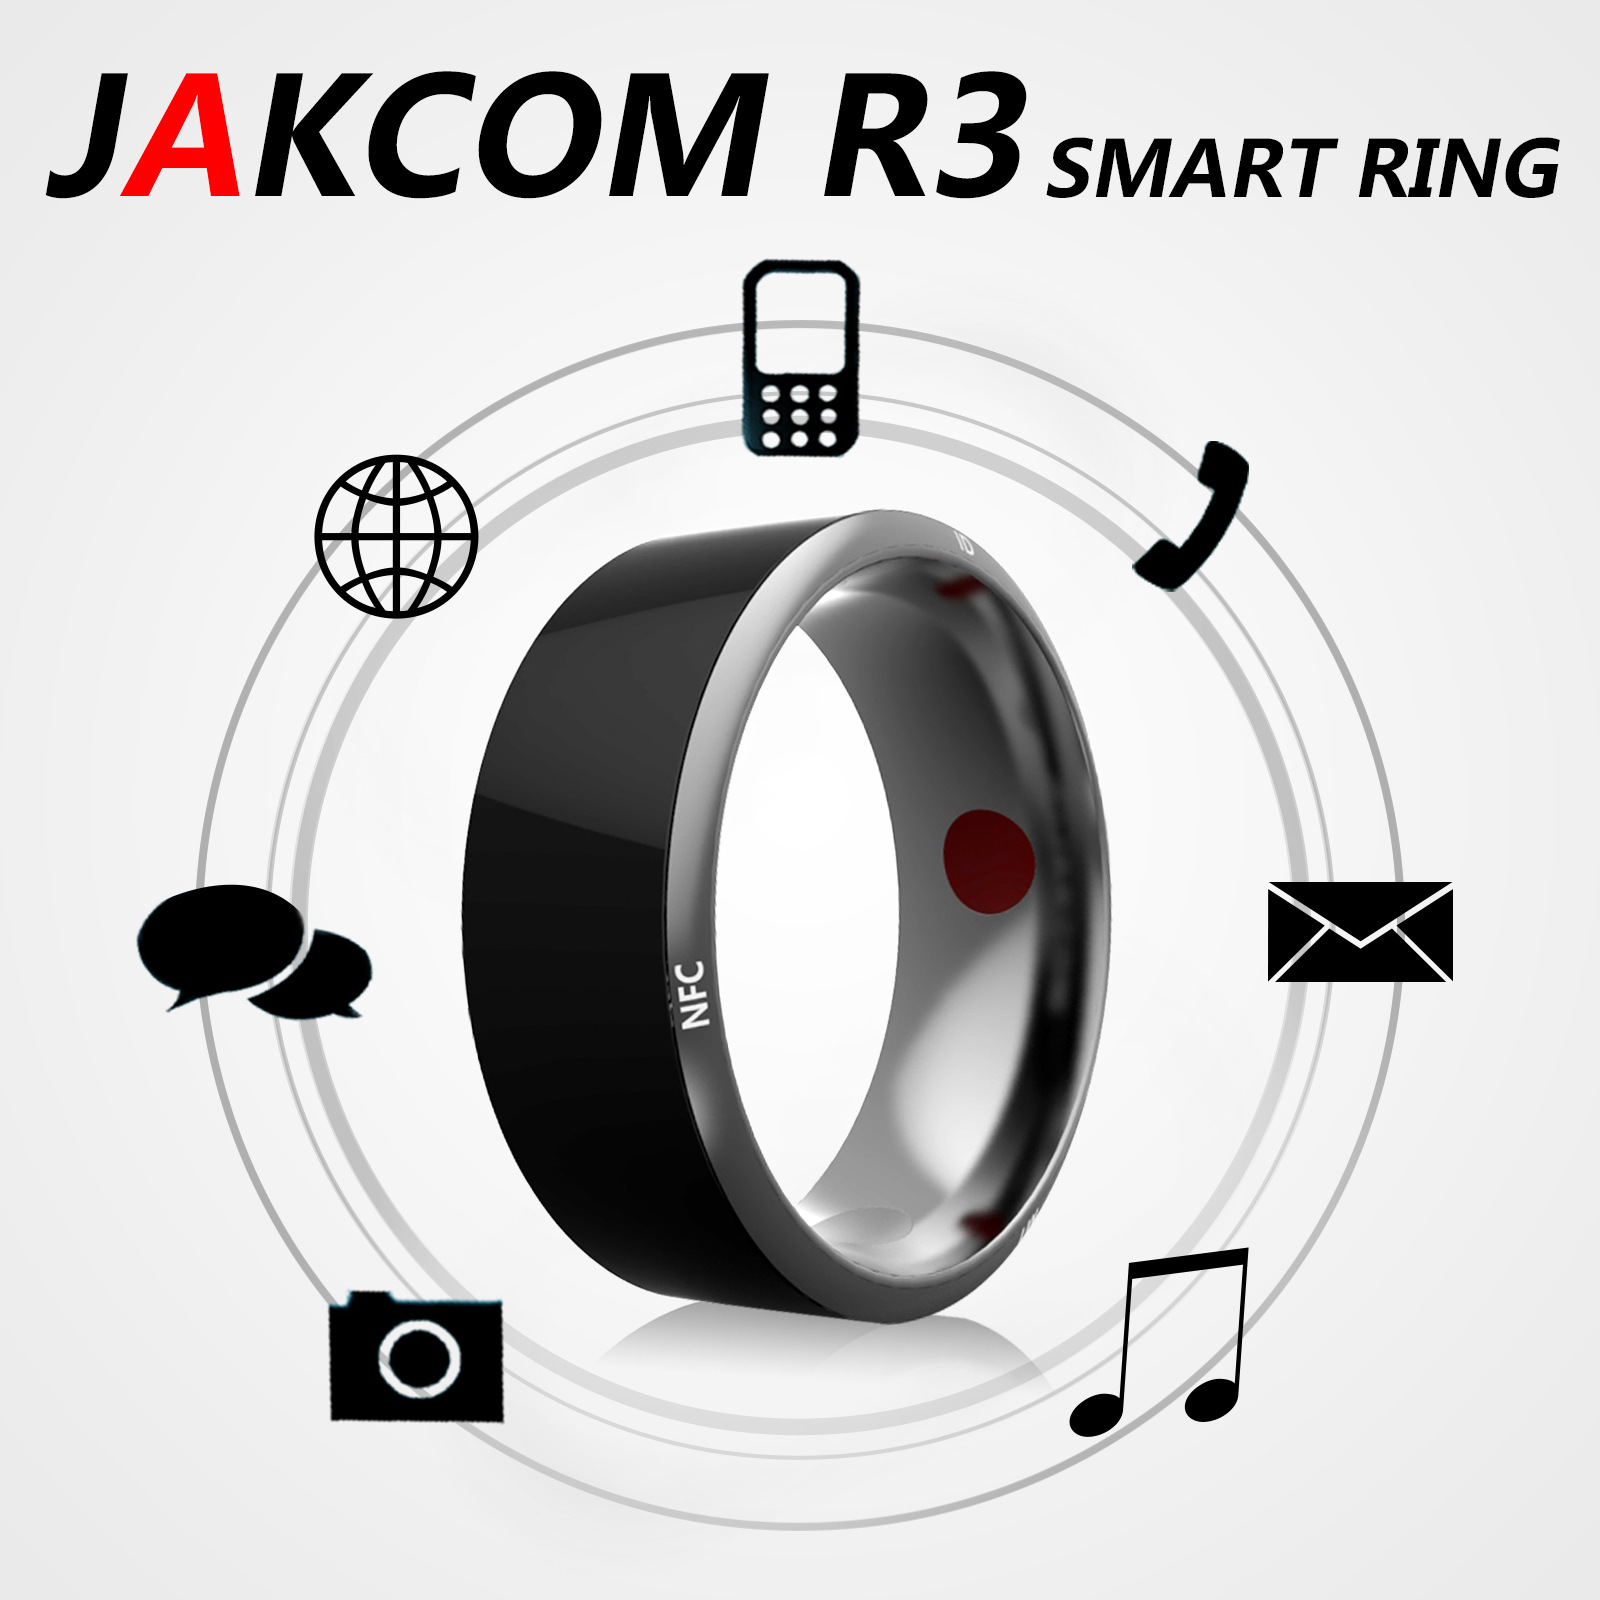 Jakcom R3 Smart Mini Magic Ring Electronic CNC Metal RFID NFC 125khz 13.56mhz IC/ID Rewritable Simulation Access Card Tag Key